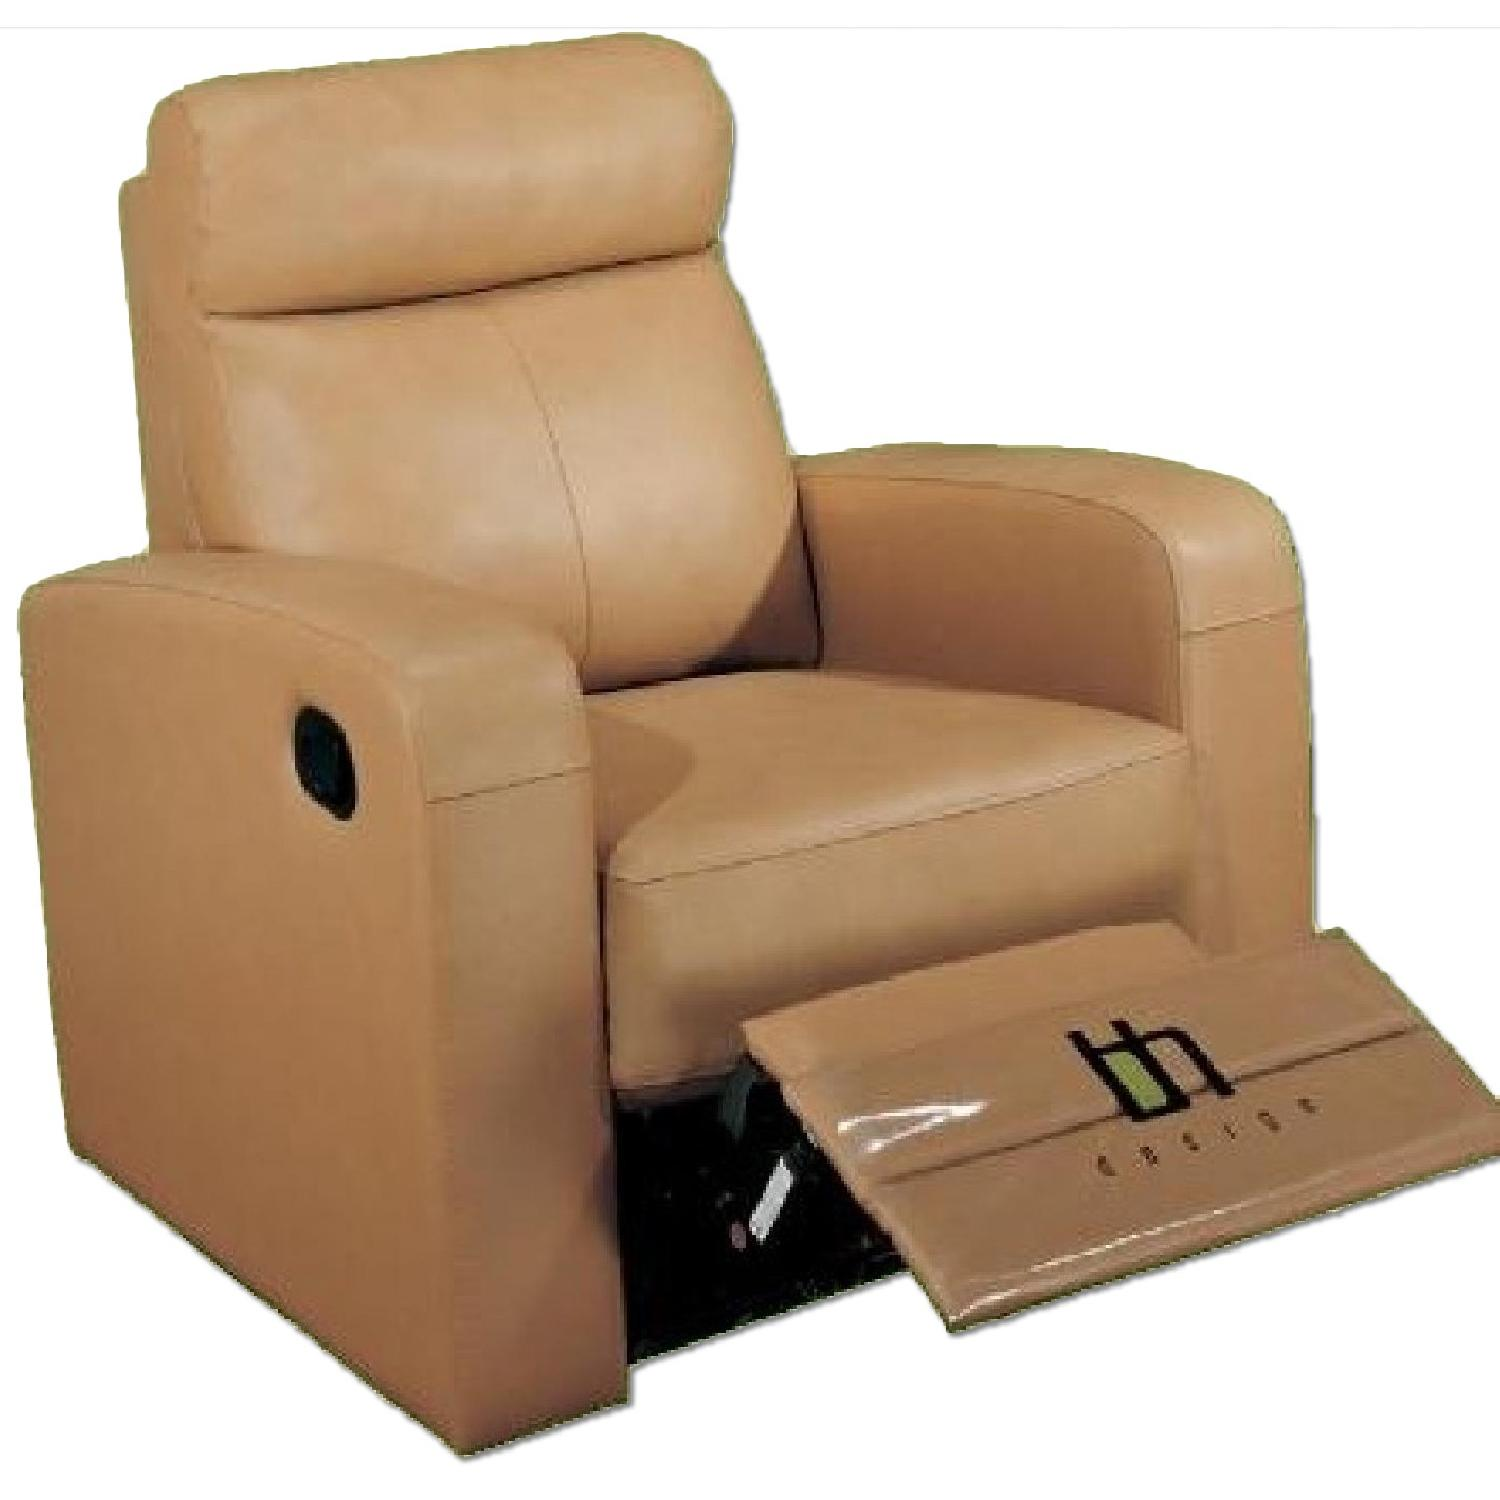 Double Recliner Chair Apartment Size Recliner Chair In Taupe Color Top Grain Leather W Double Leggett Platt Recliners